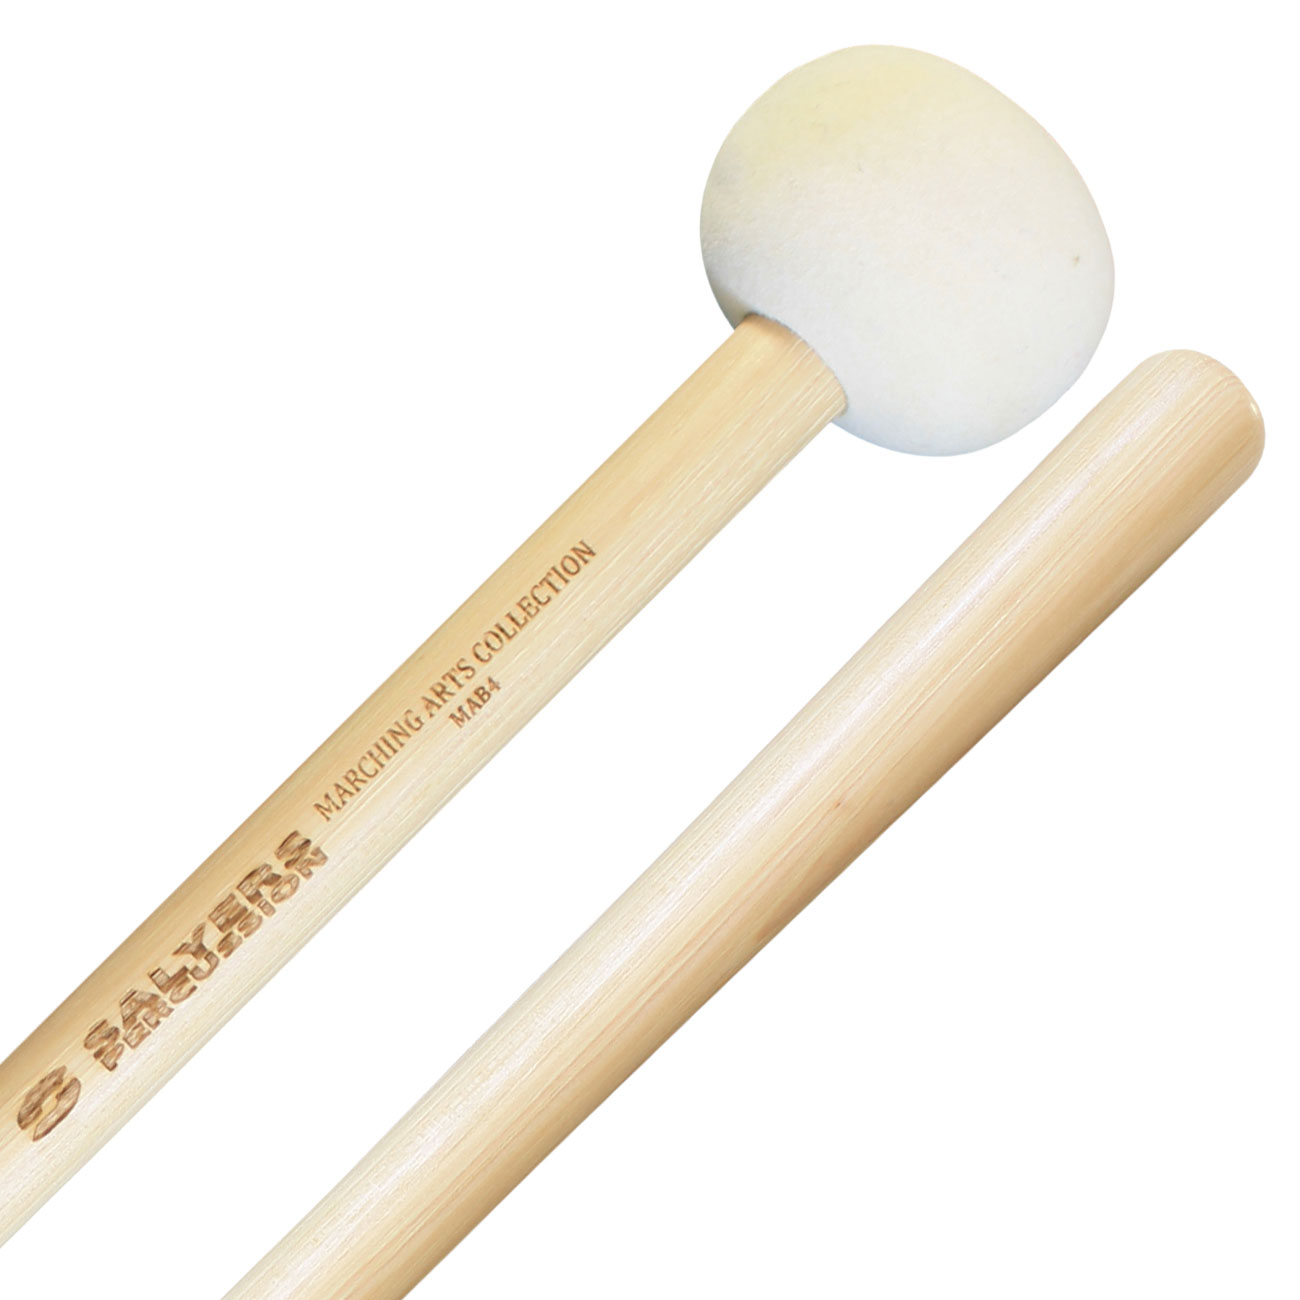 Marching bass drum mallets (L)